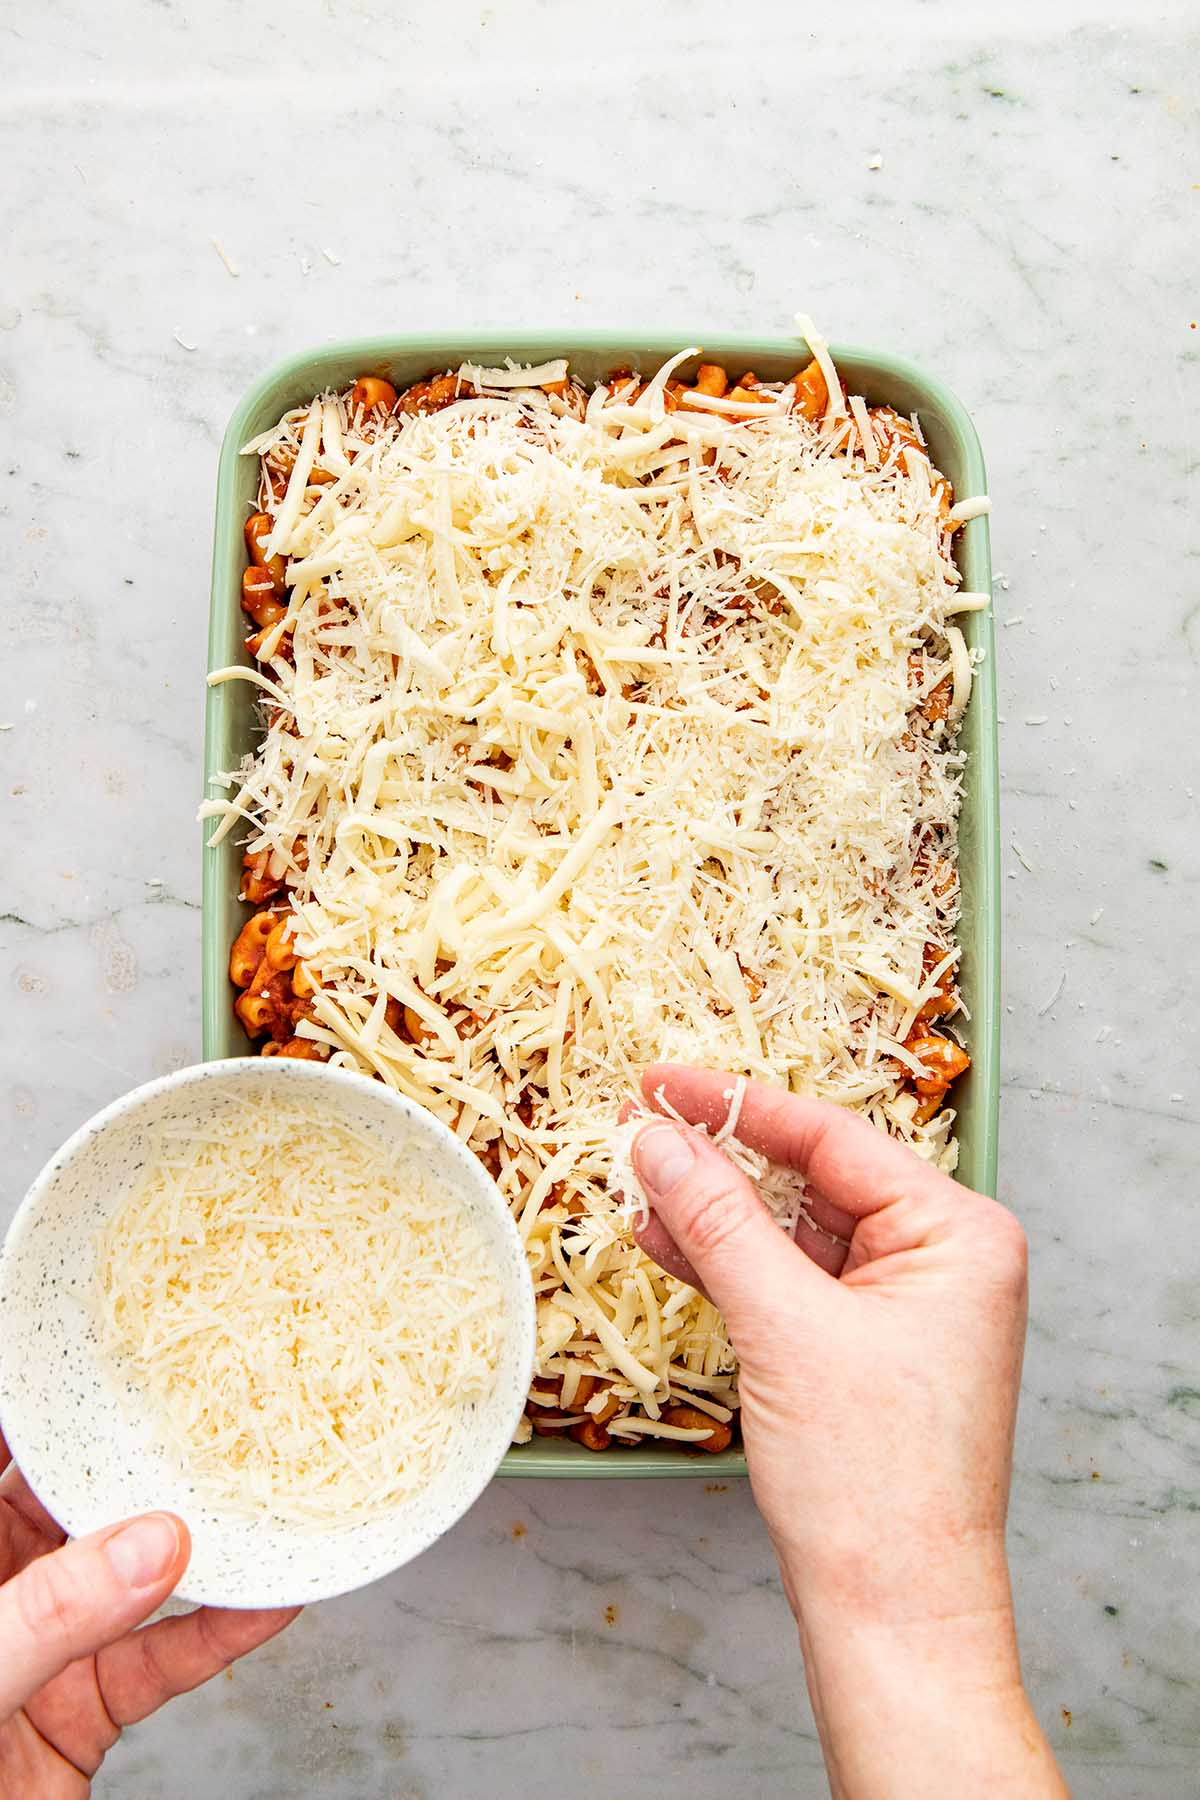 A hand sprinkling Parmesan cheese over pasta in a baking dish.